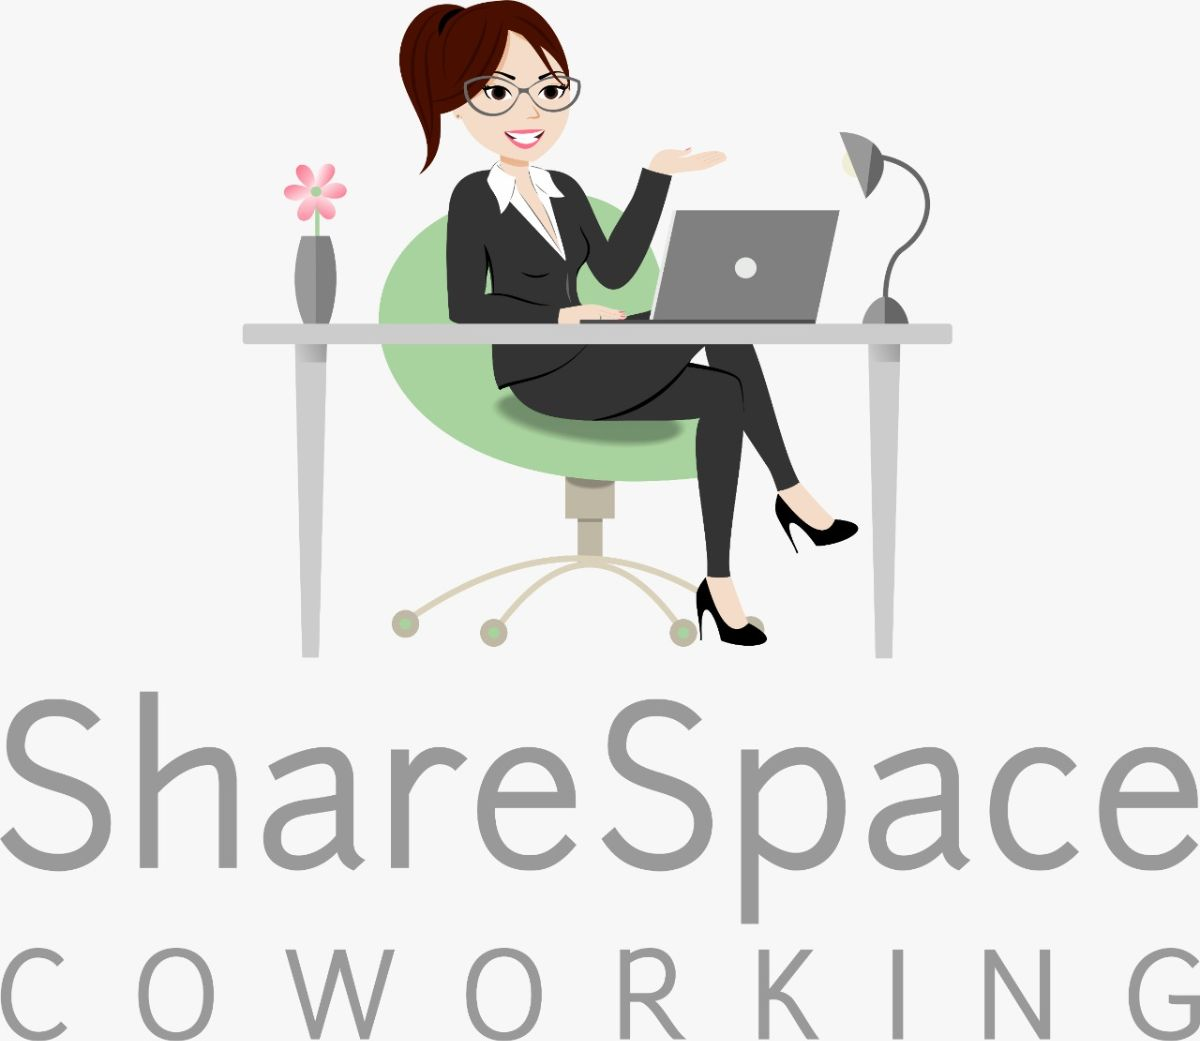 ShareSpaceCoworking